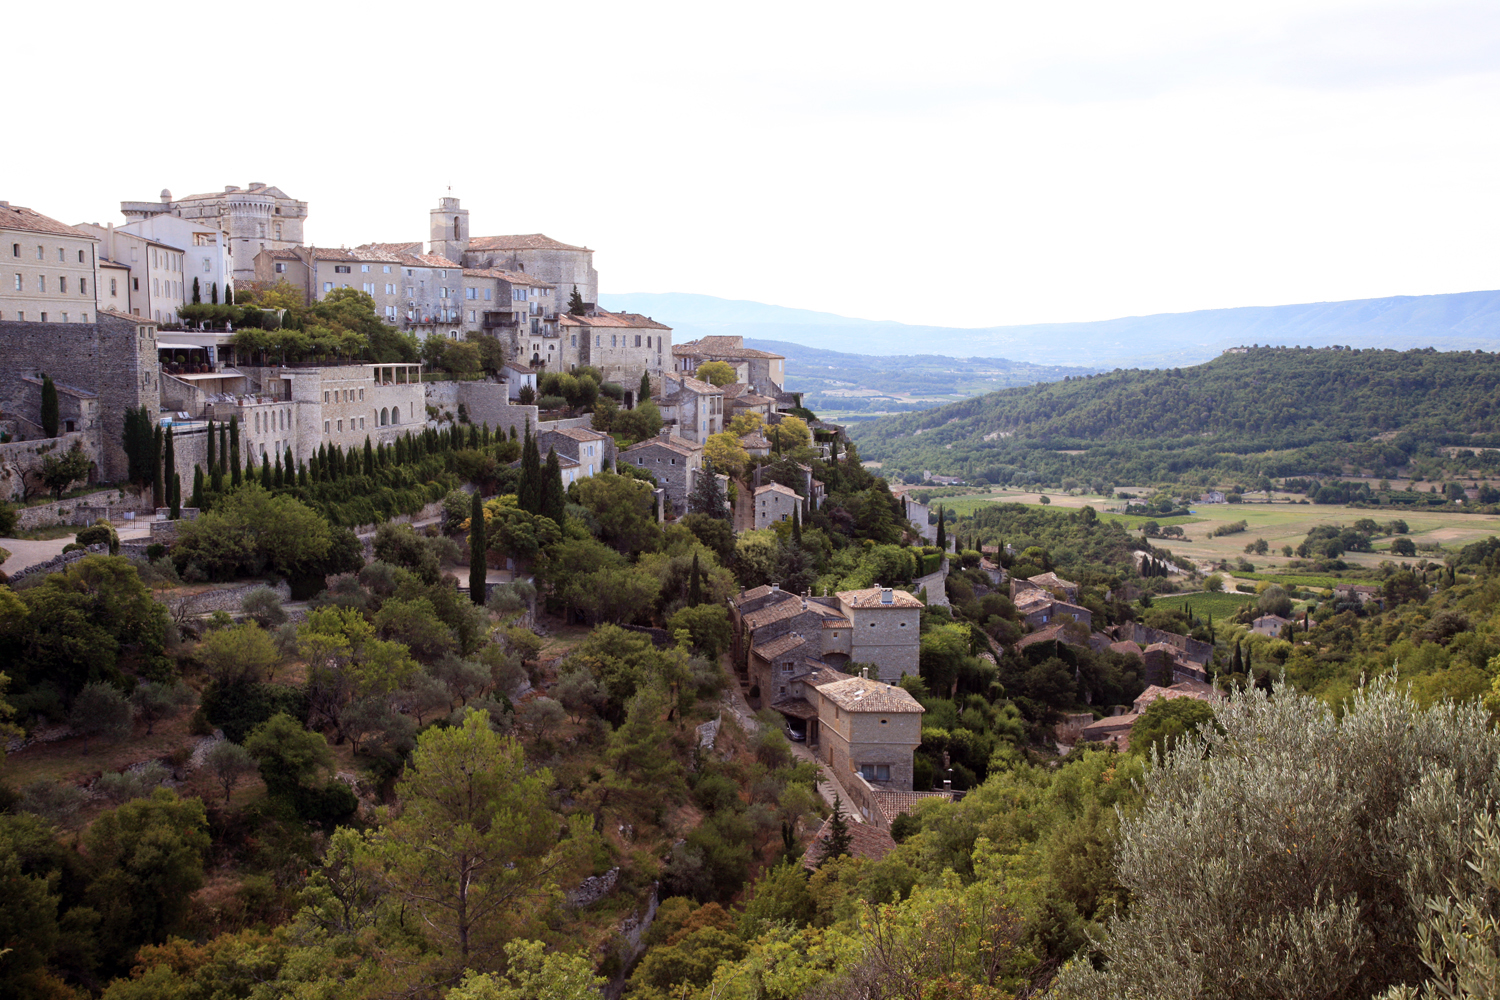 The Hill Town of Gordes